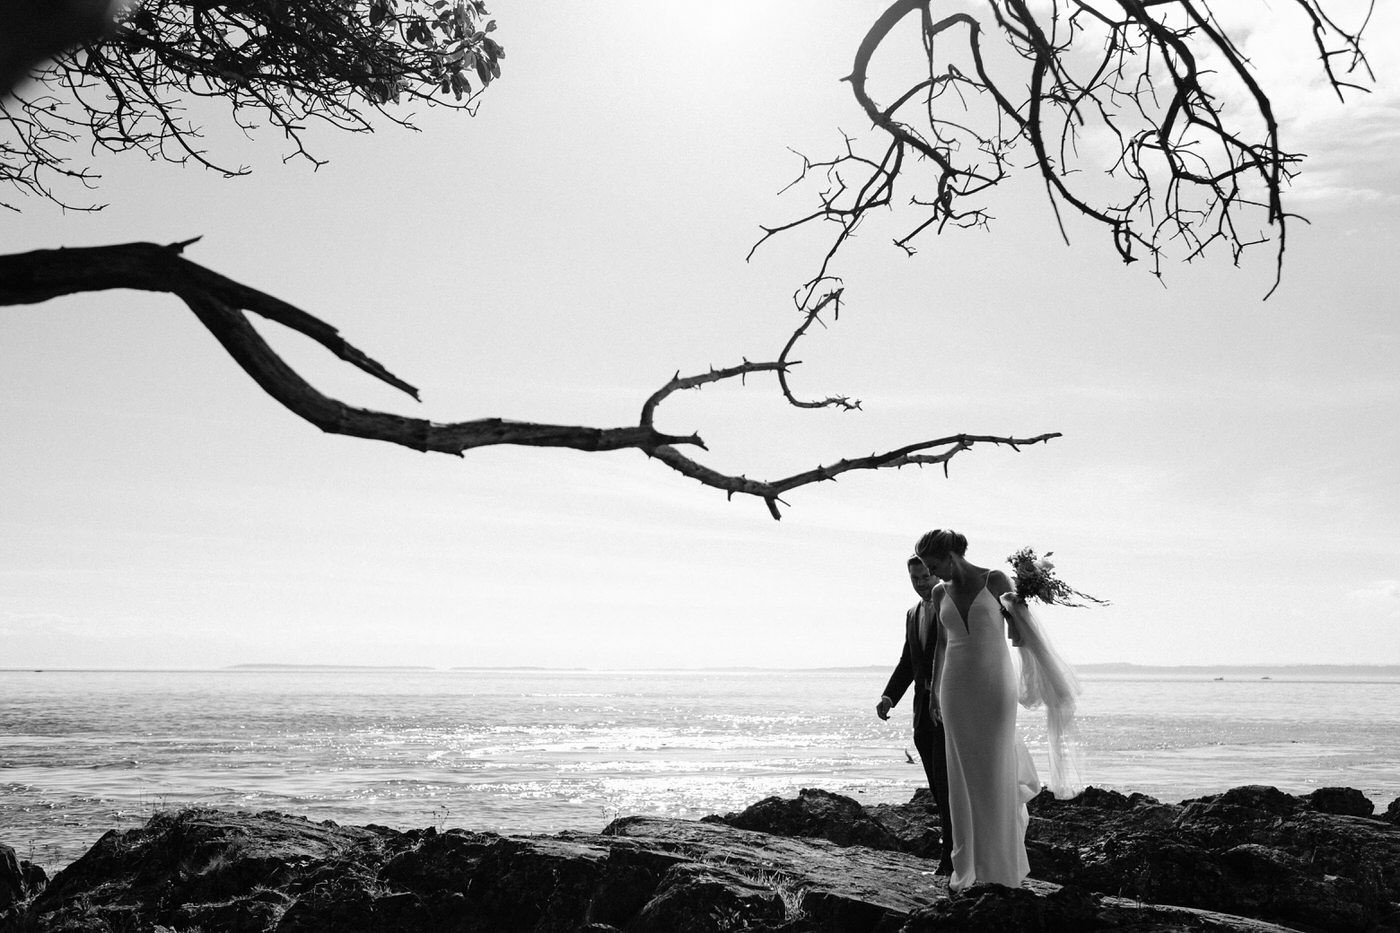 240-pacific-northwest-wedding-photography-by-ryan-flynn.jpg